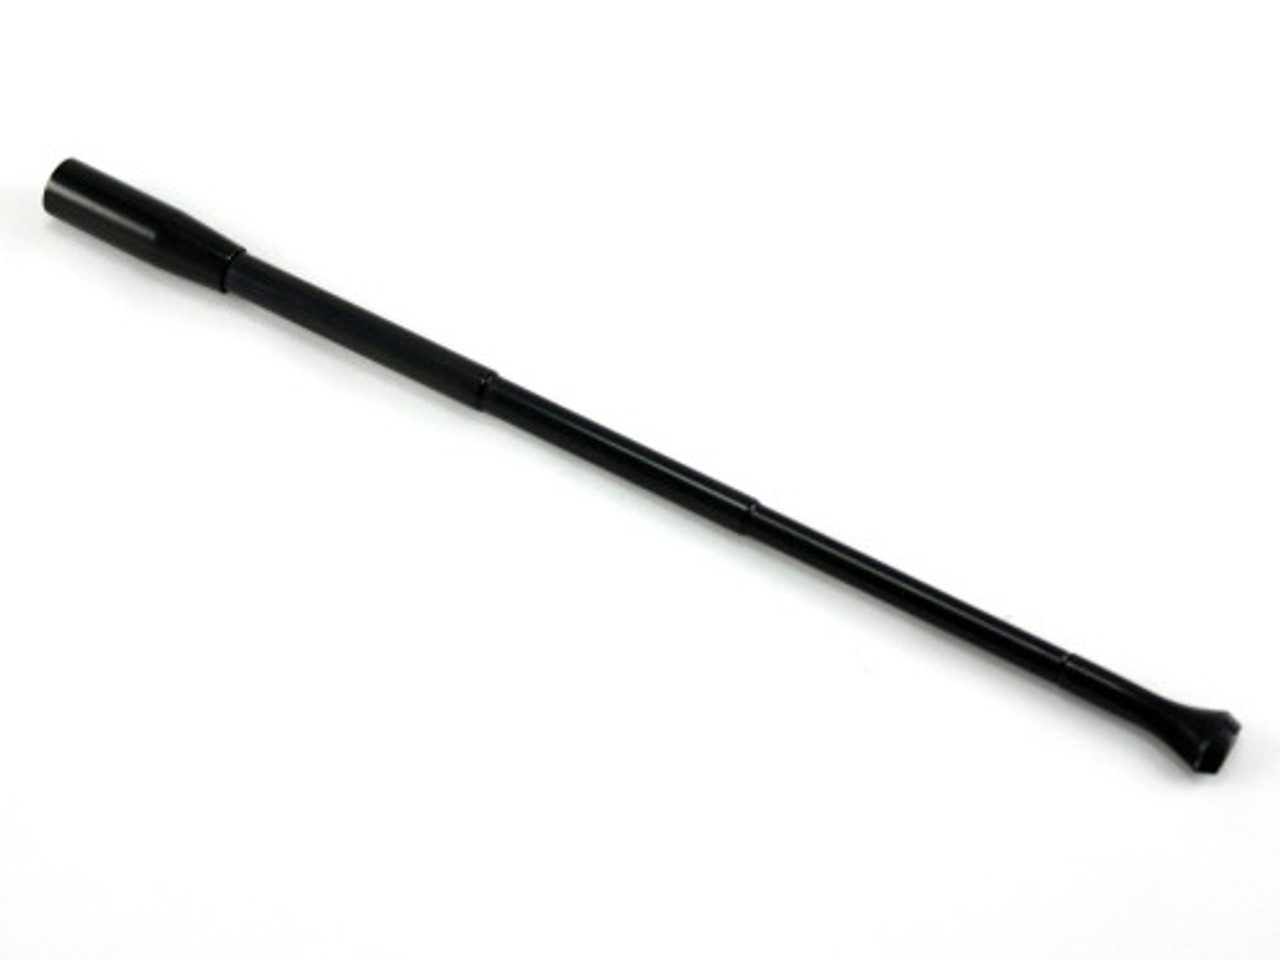 Black Telescopic Cigarette Holder